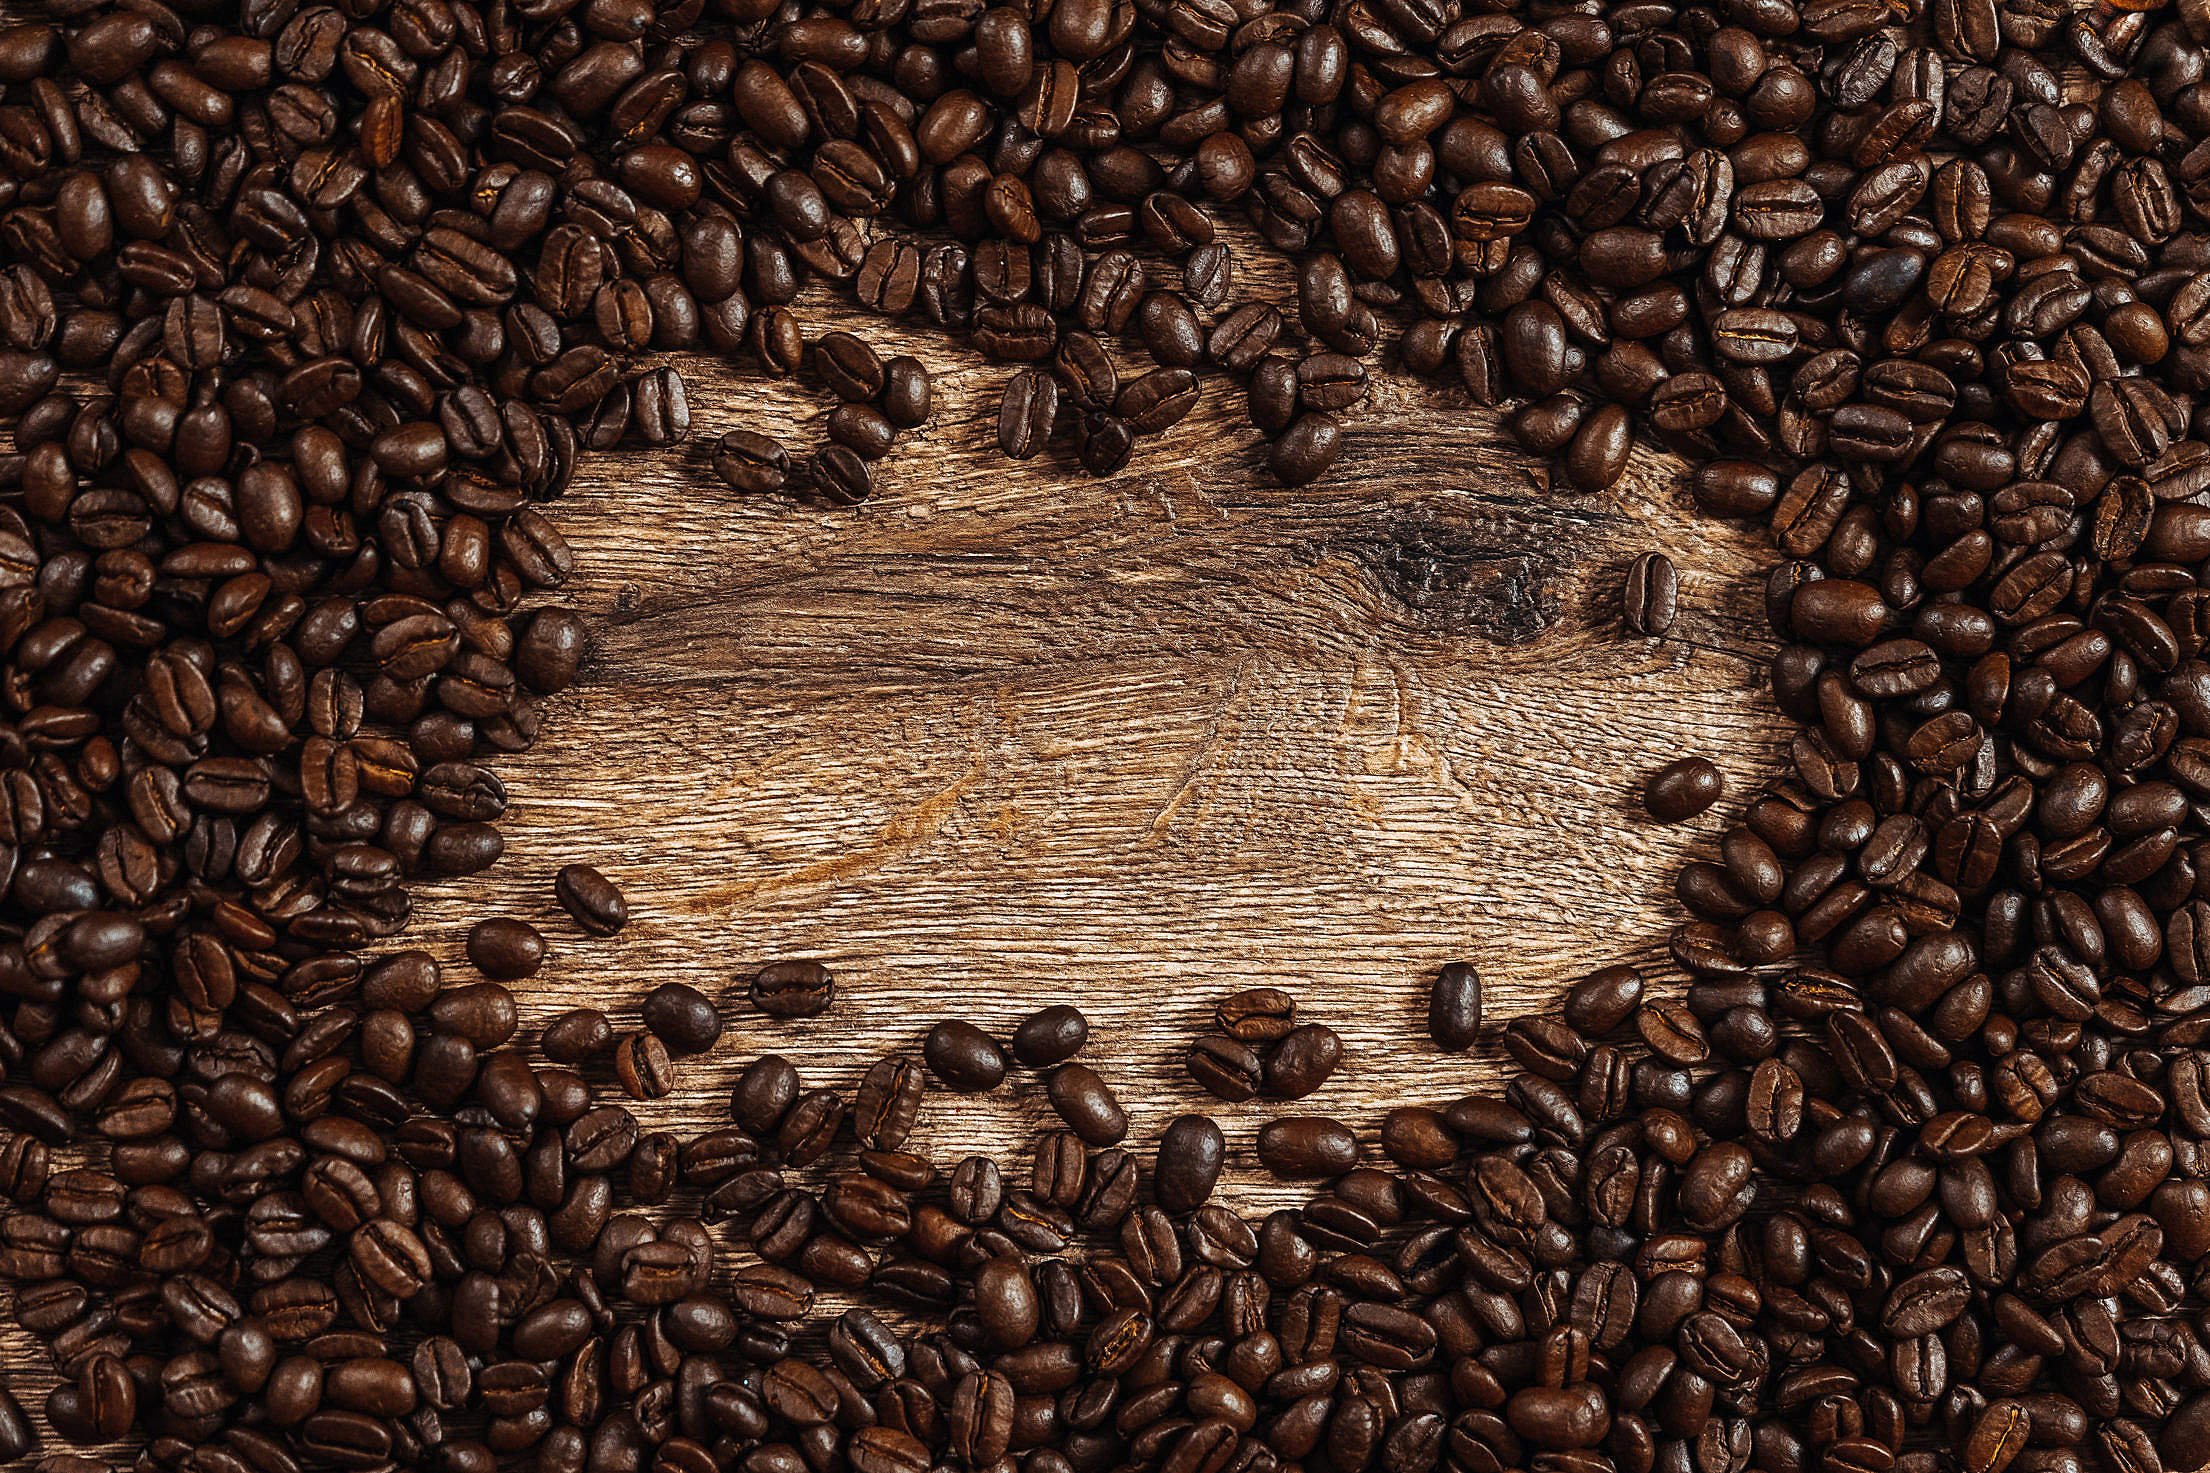 Coffee Beans Background with Place for Text Free Stock Photo